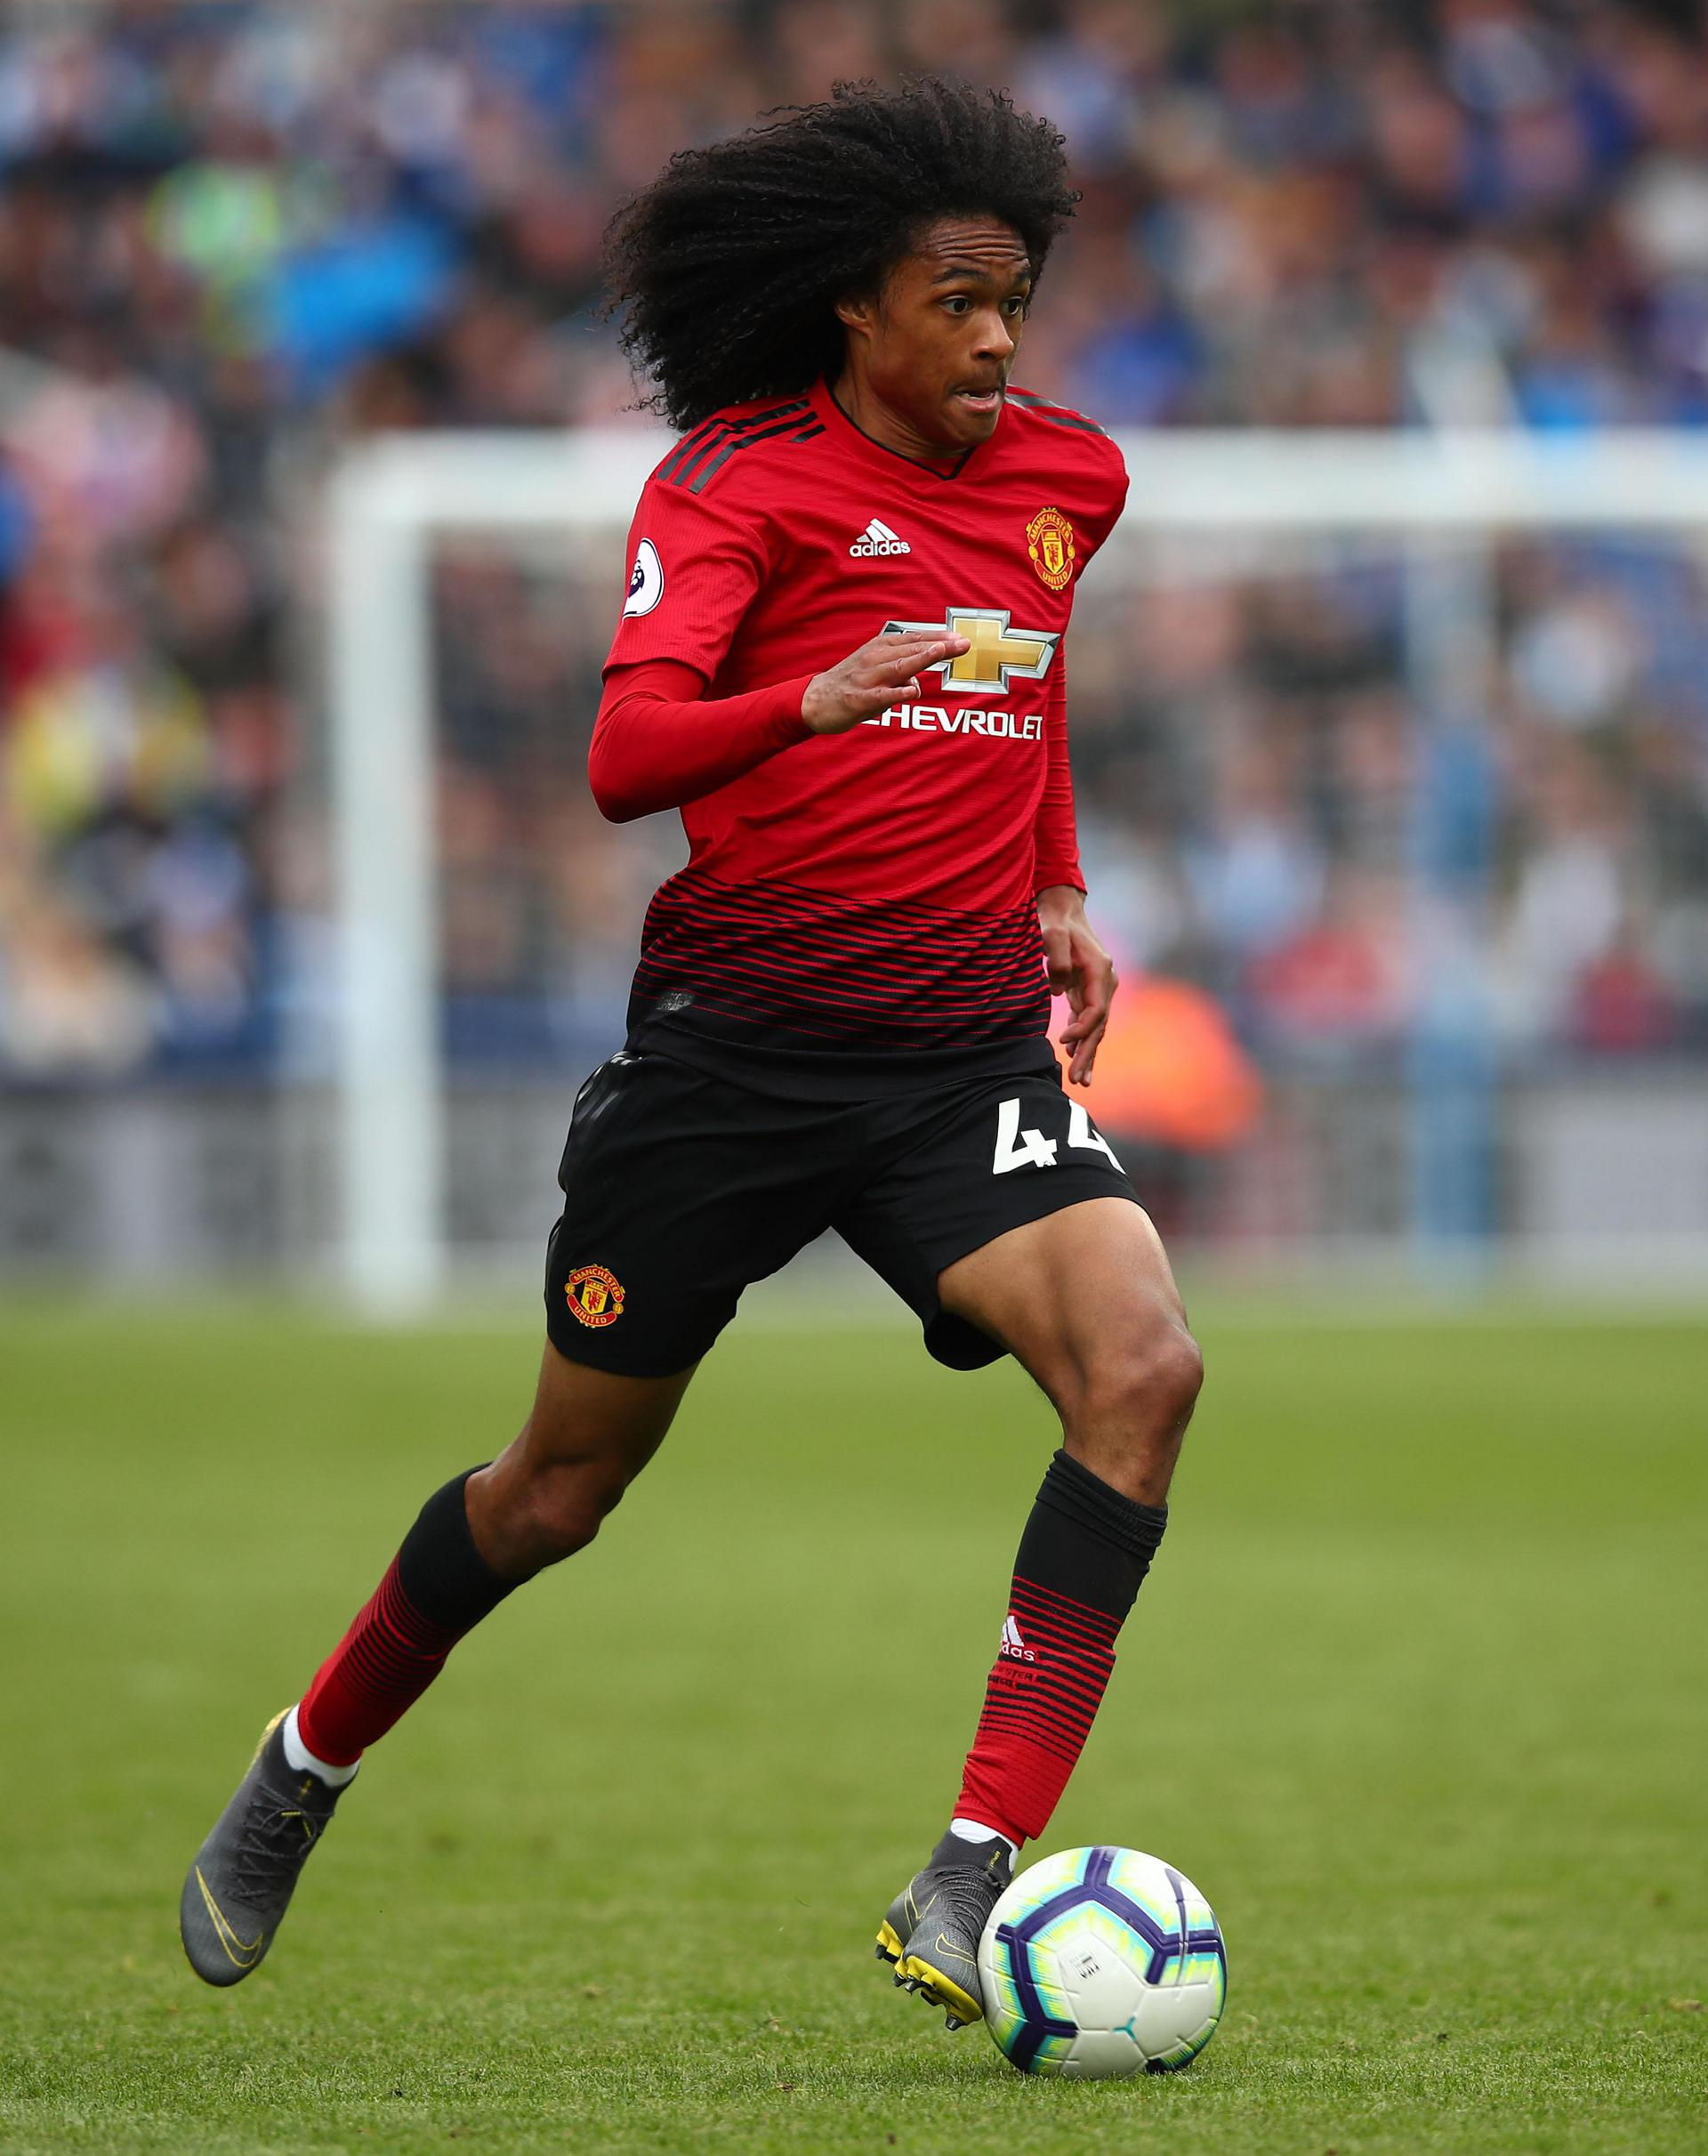 Tahith Chong playing for United.